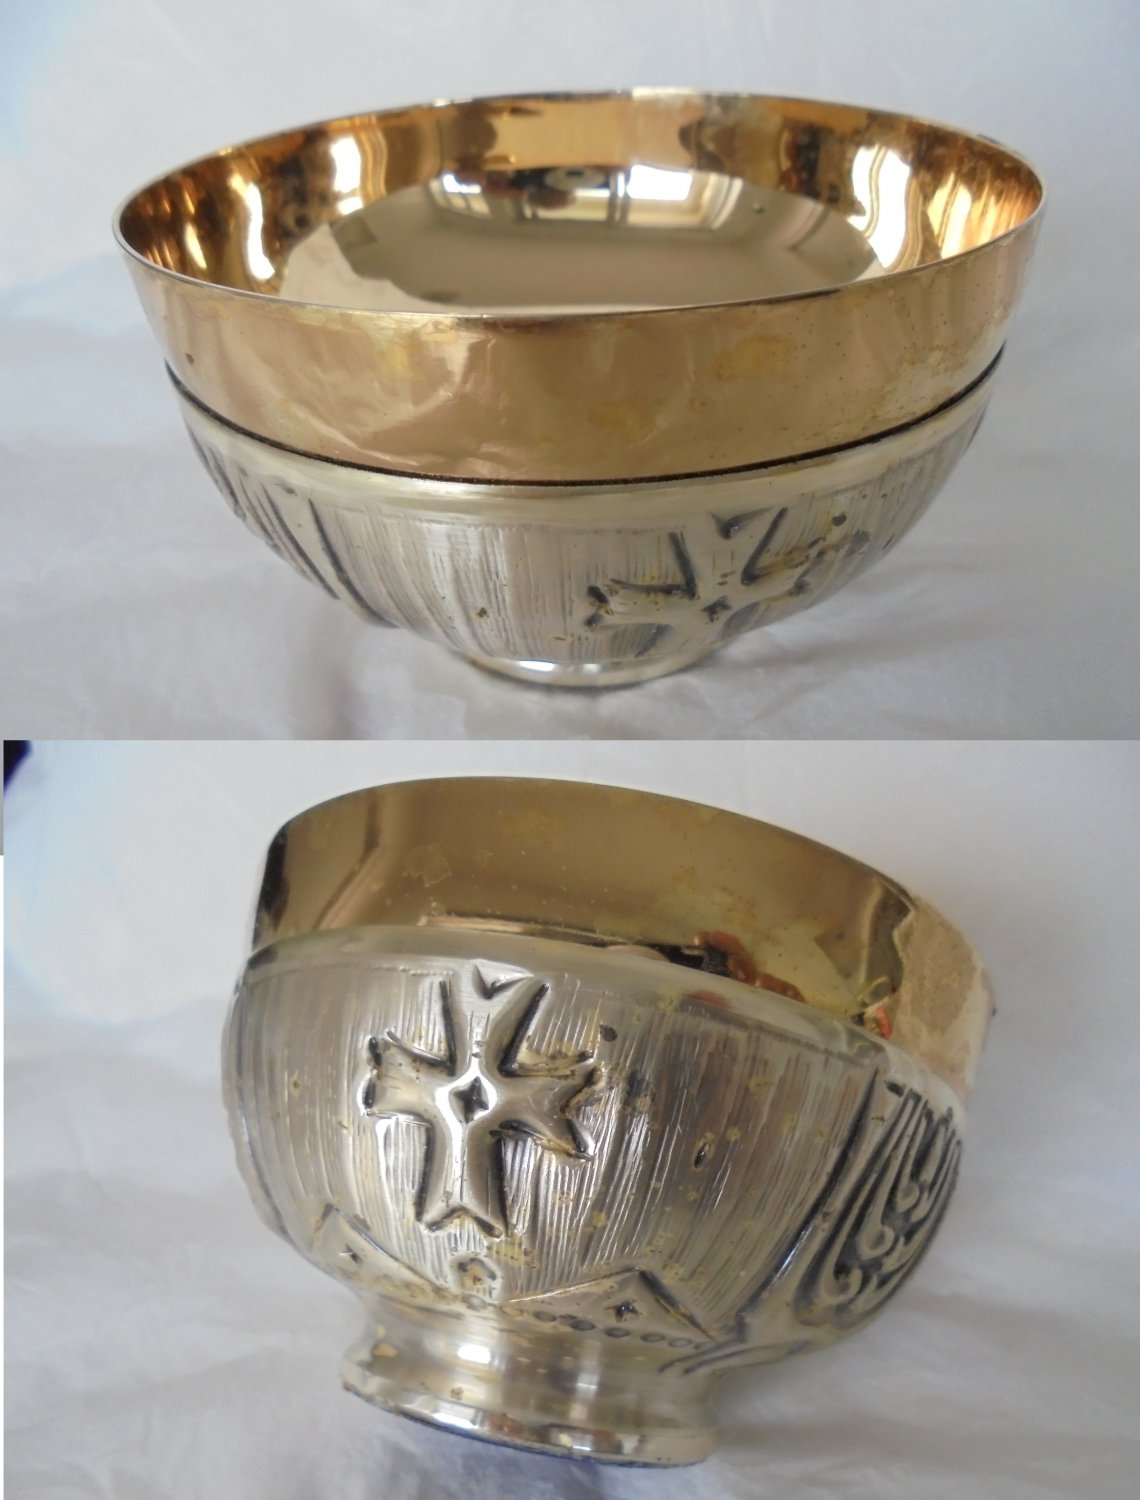 CIBARIUM COMMUNION CUP in silver and gold plated Original 1960s